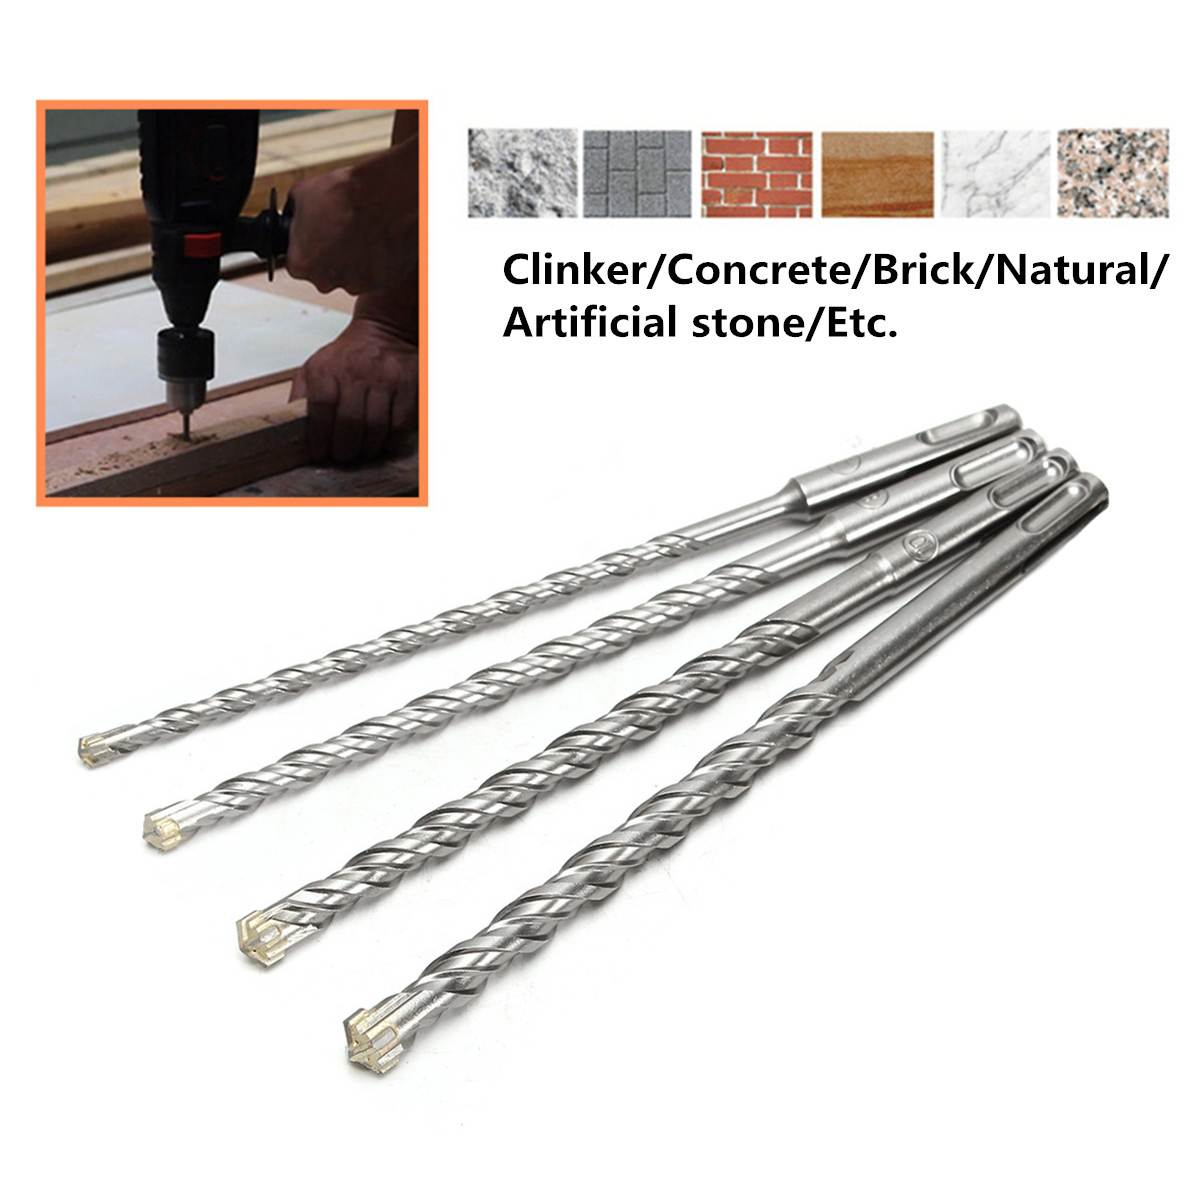 11cm Concrete Drill Bit Double SDS Plus Slot Masonry Hammer Head Tool 5/6/8/10mm High Speed White Steel Wrench For Electric Dril